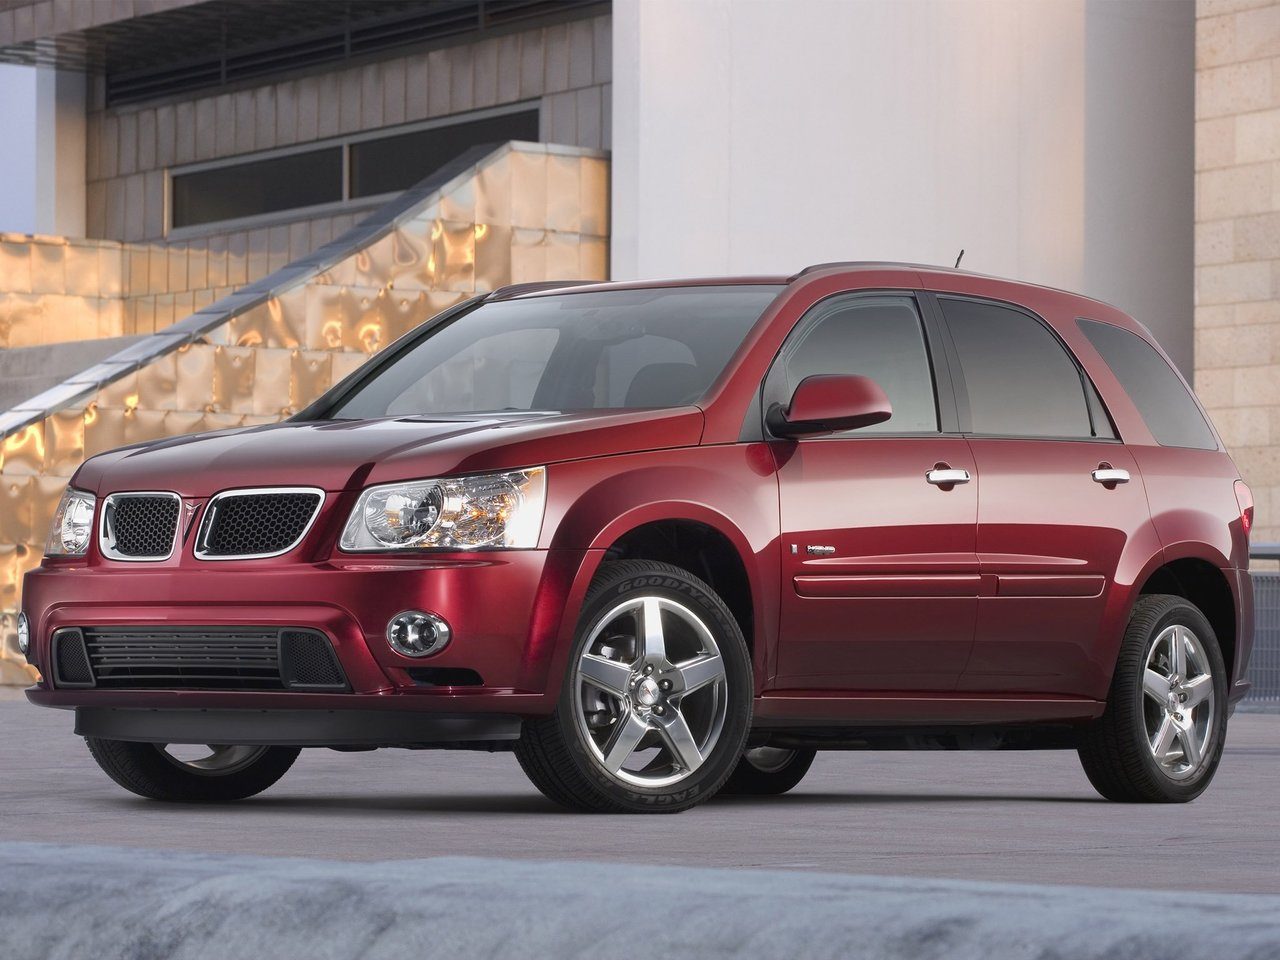 Автомобиль Pontiac Torrent